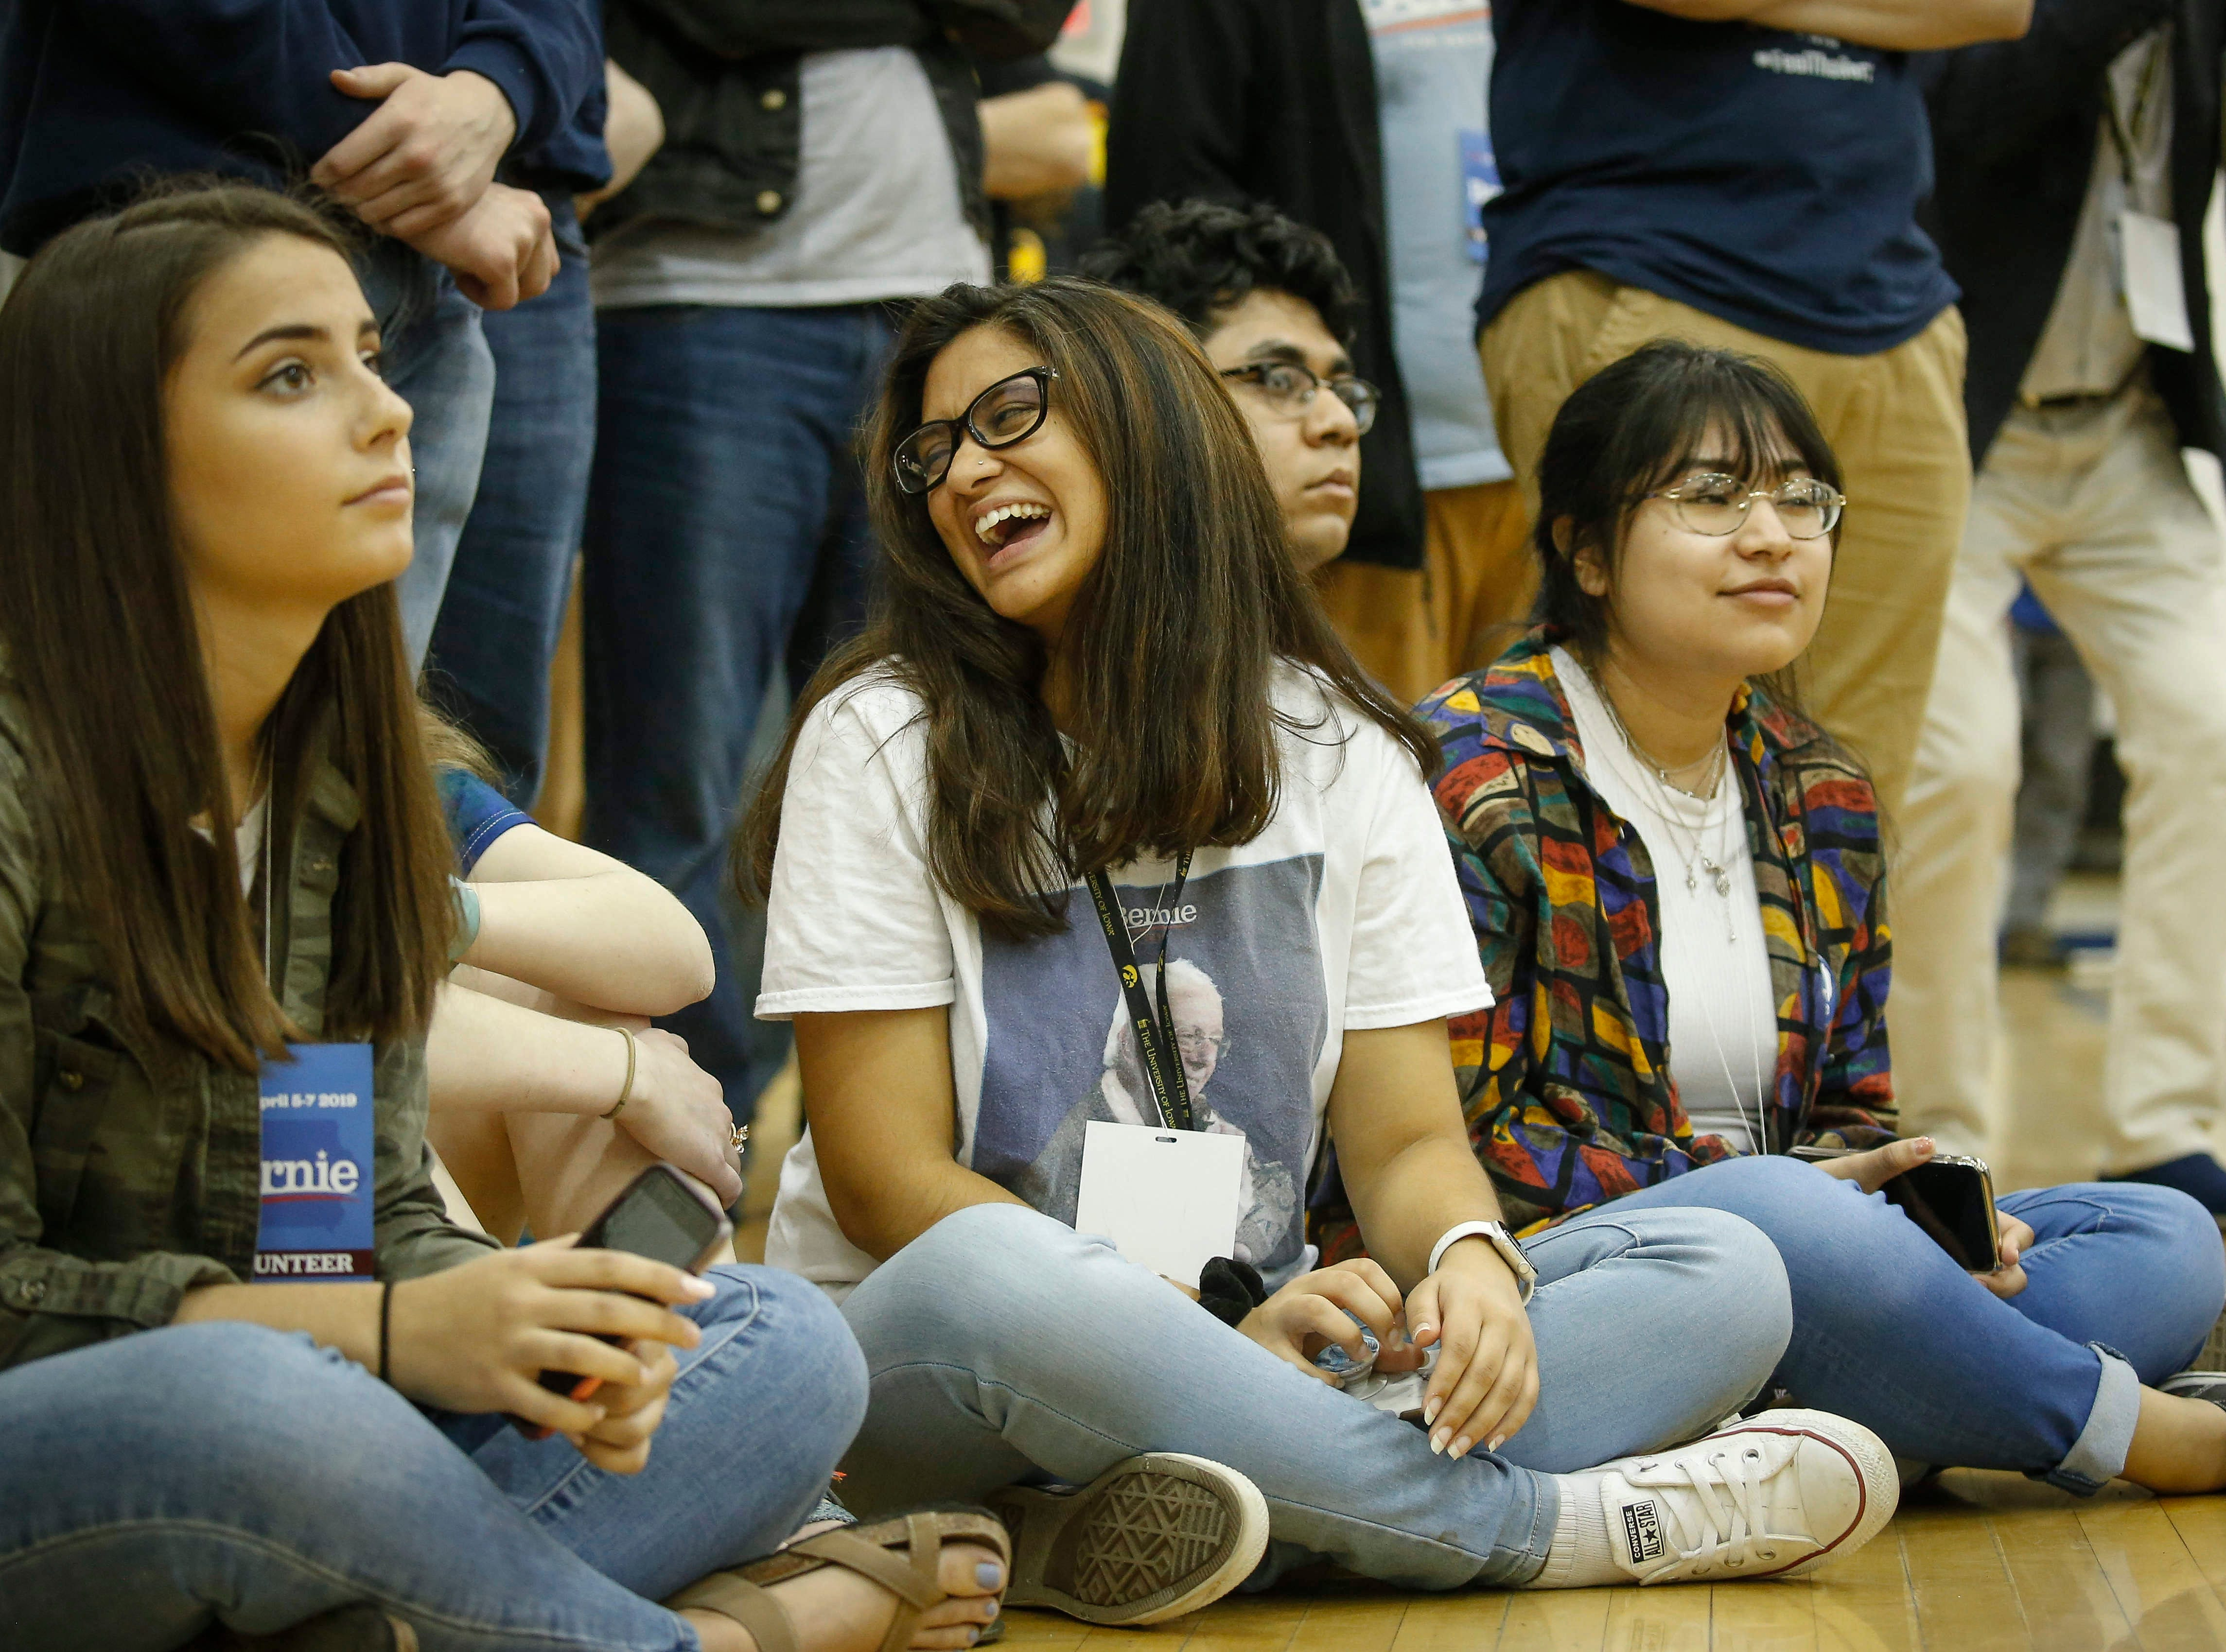 Young supporters of U.S. Sen. Bernie Sanders take a seat on the floor as the Democratic presidential candidate hopeful speaks during a town hall meeting at West Middle School in Muscatine on Saturday, April 6, 2019.